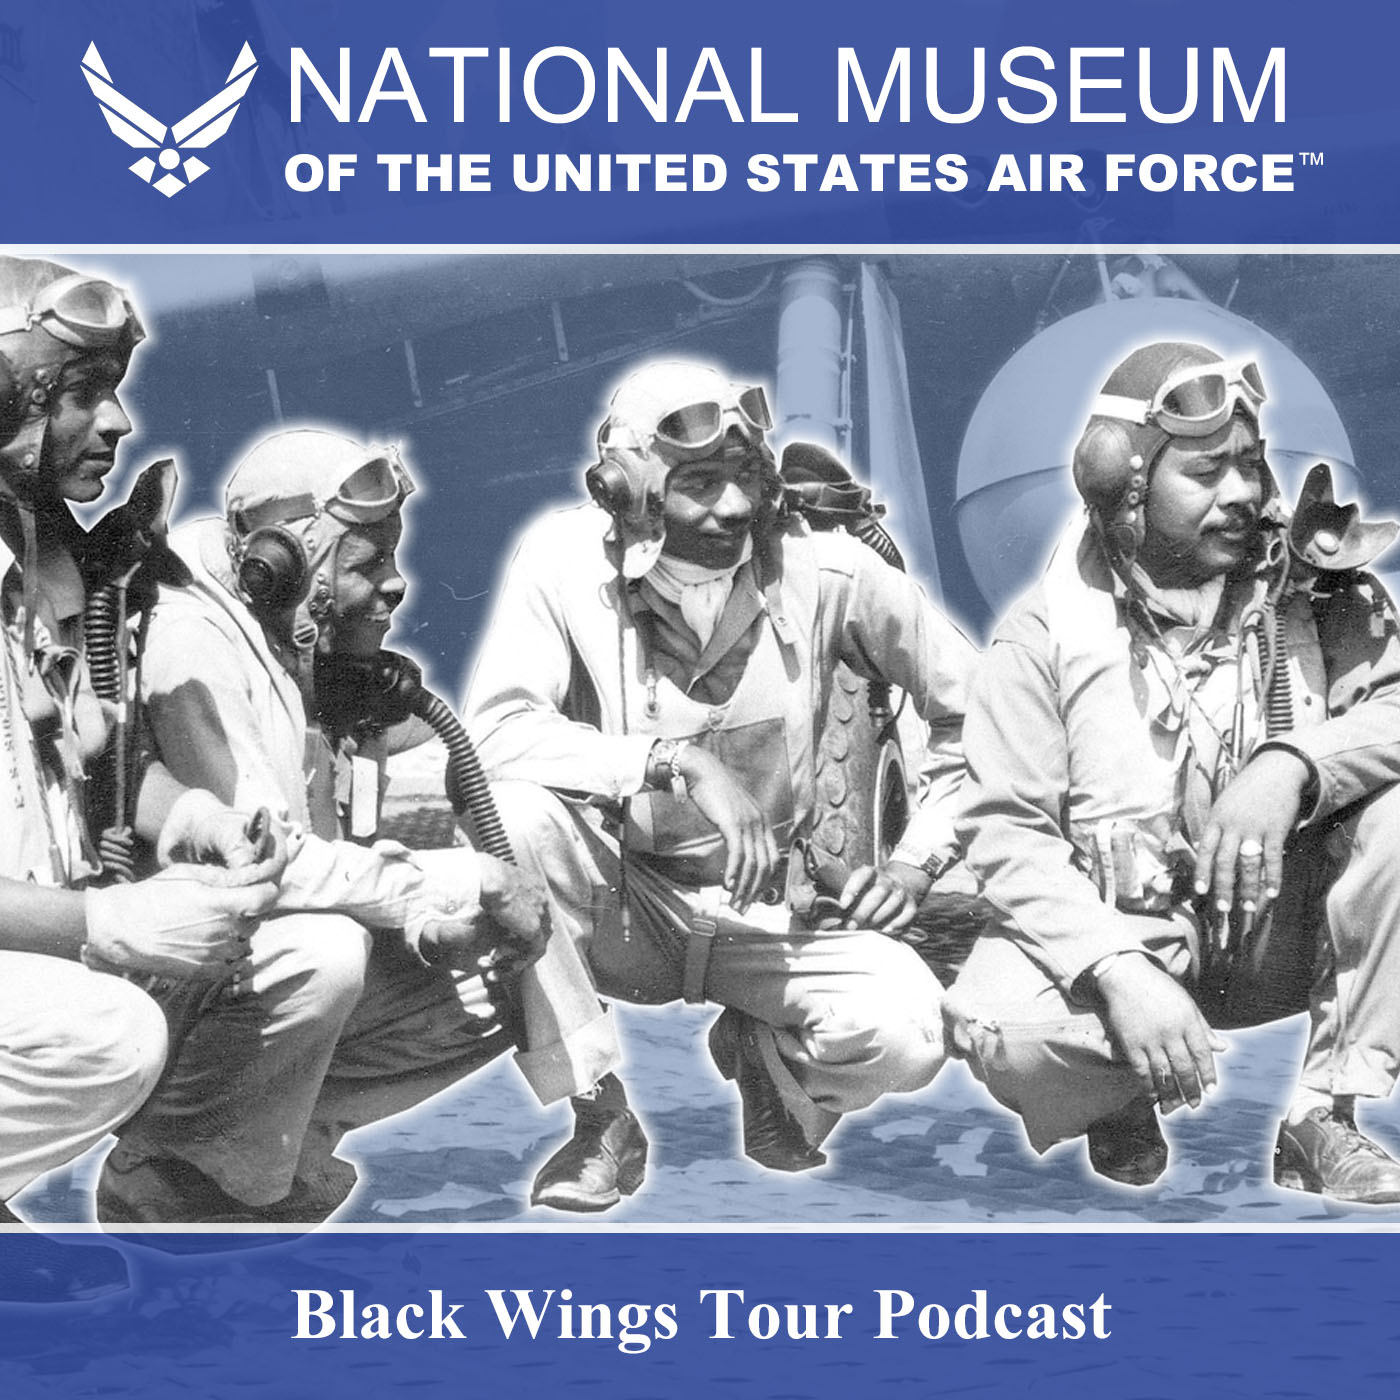 Subscribe to Black Wings Tour Podcast